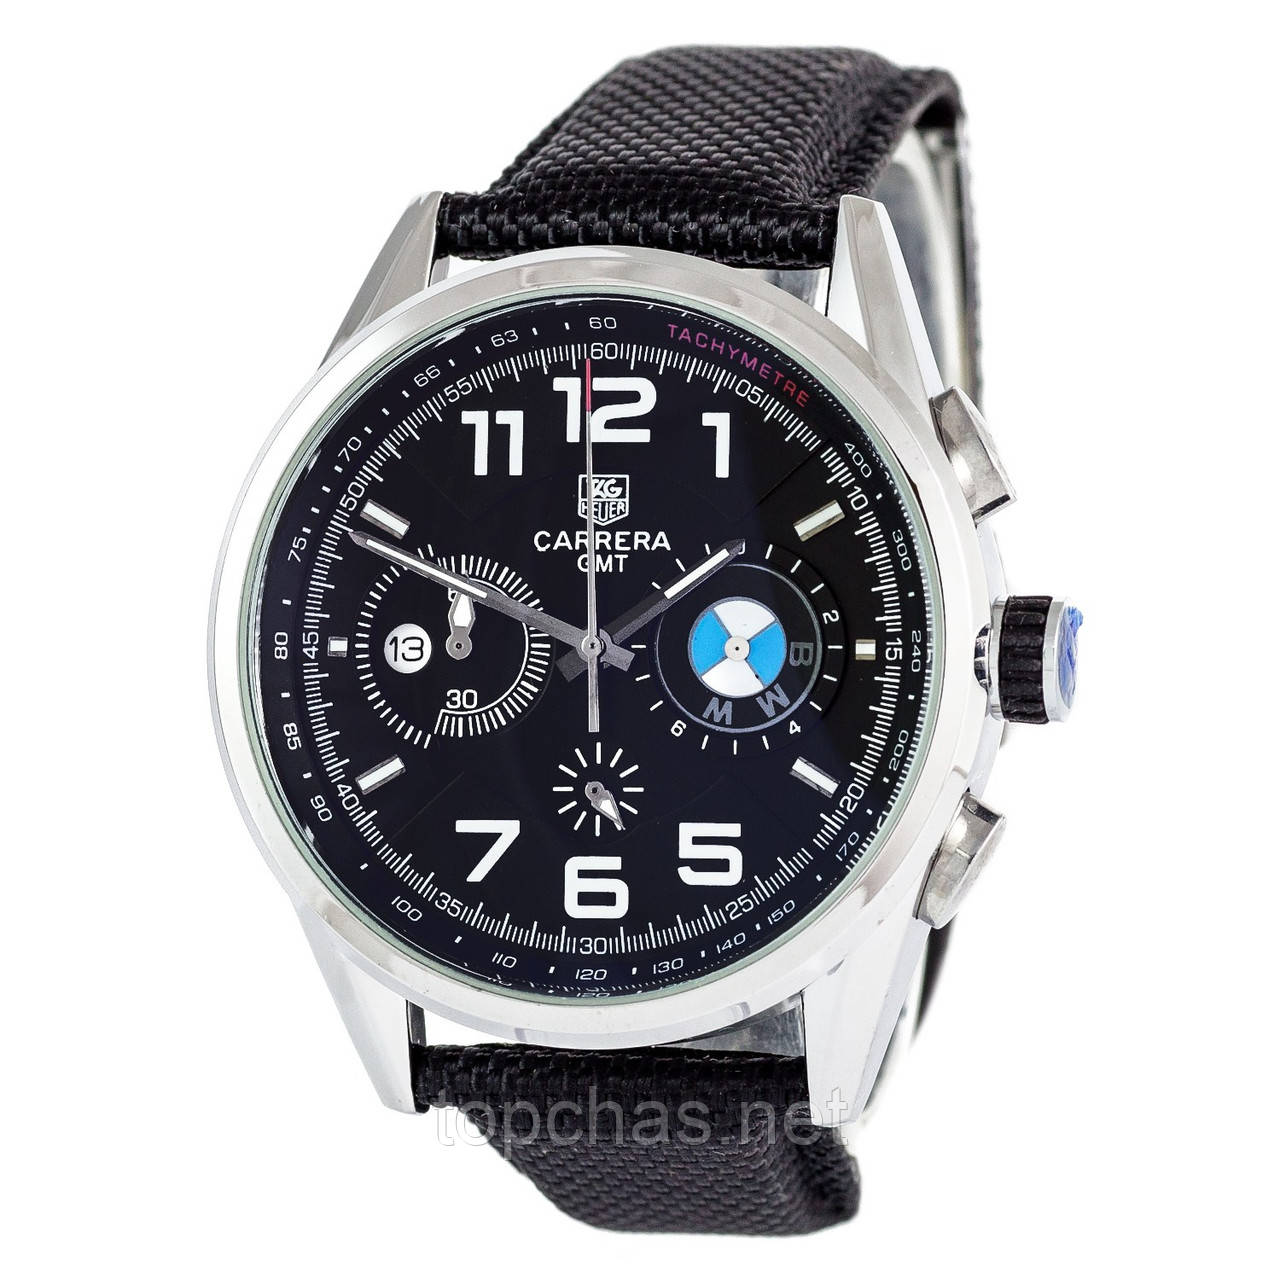 ������� ��������� �������� ���� ��������� Tag Heuer BMW Power Carrera GMT Chronograph �� ������������� �������, ���� 1